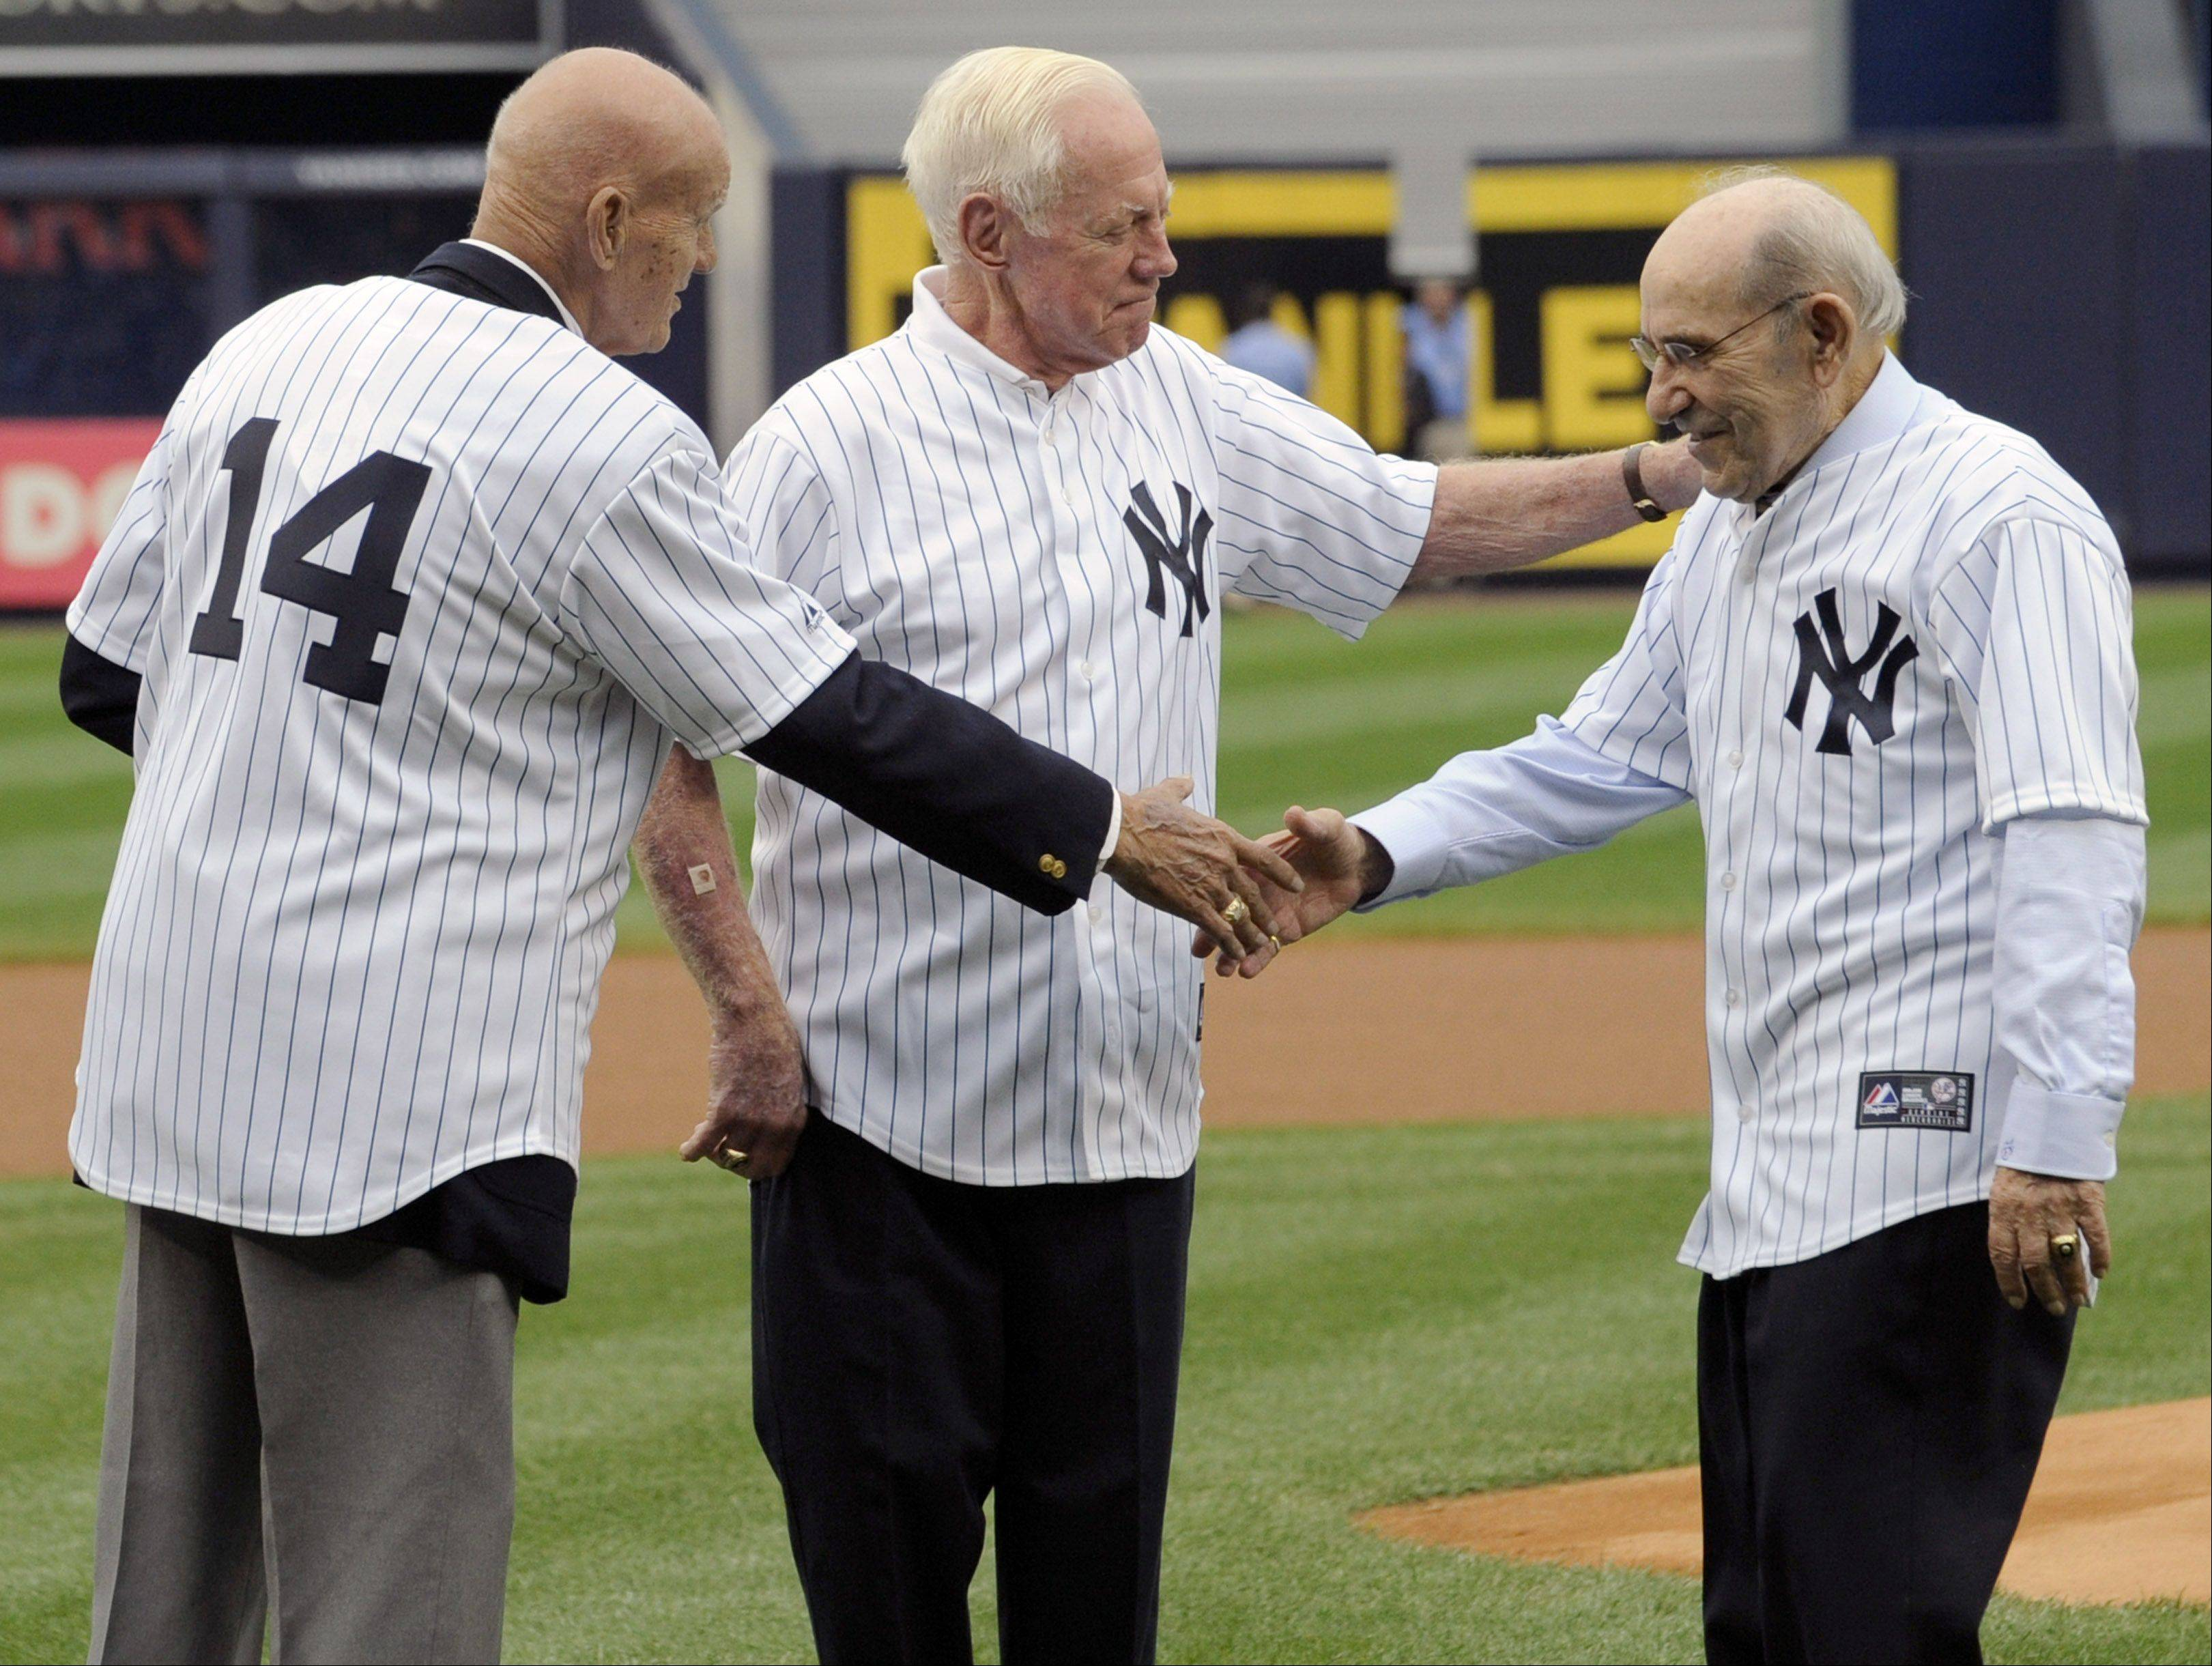 New York Yankees' Moose Skowron, left, and Whitey Ford welcome Yogi Berra, right, as they gather before the Yankees' baseball game against the Boston Red Sox on Saturday, Sept. 24, 2011, at Yankee Stadium in New York. The Yankees marked the 50th anniversary of Roger Maris' 61 home runs in 1961.